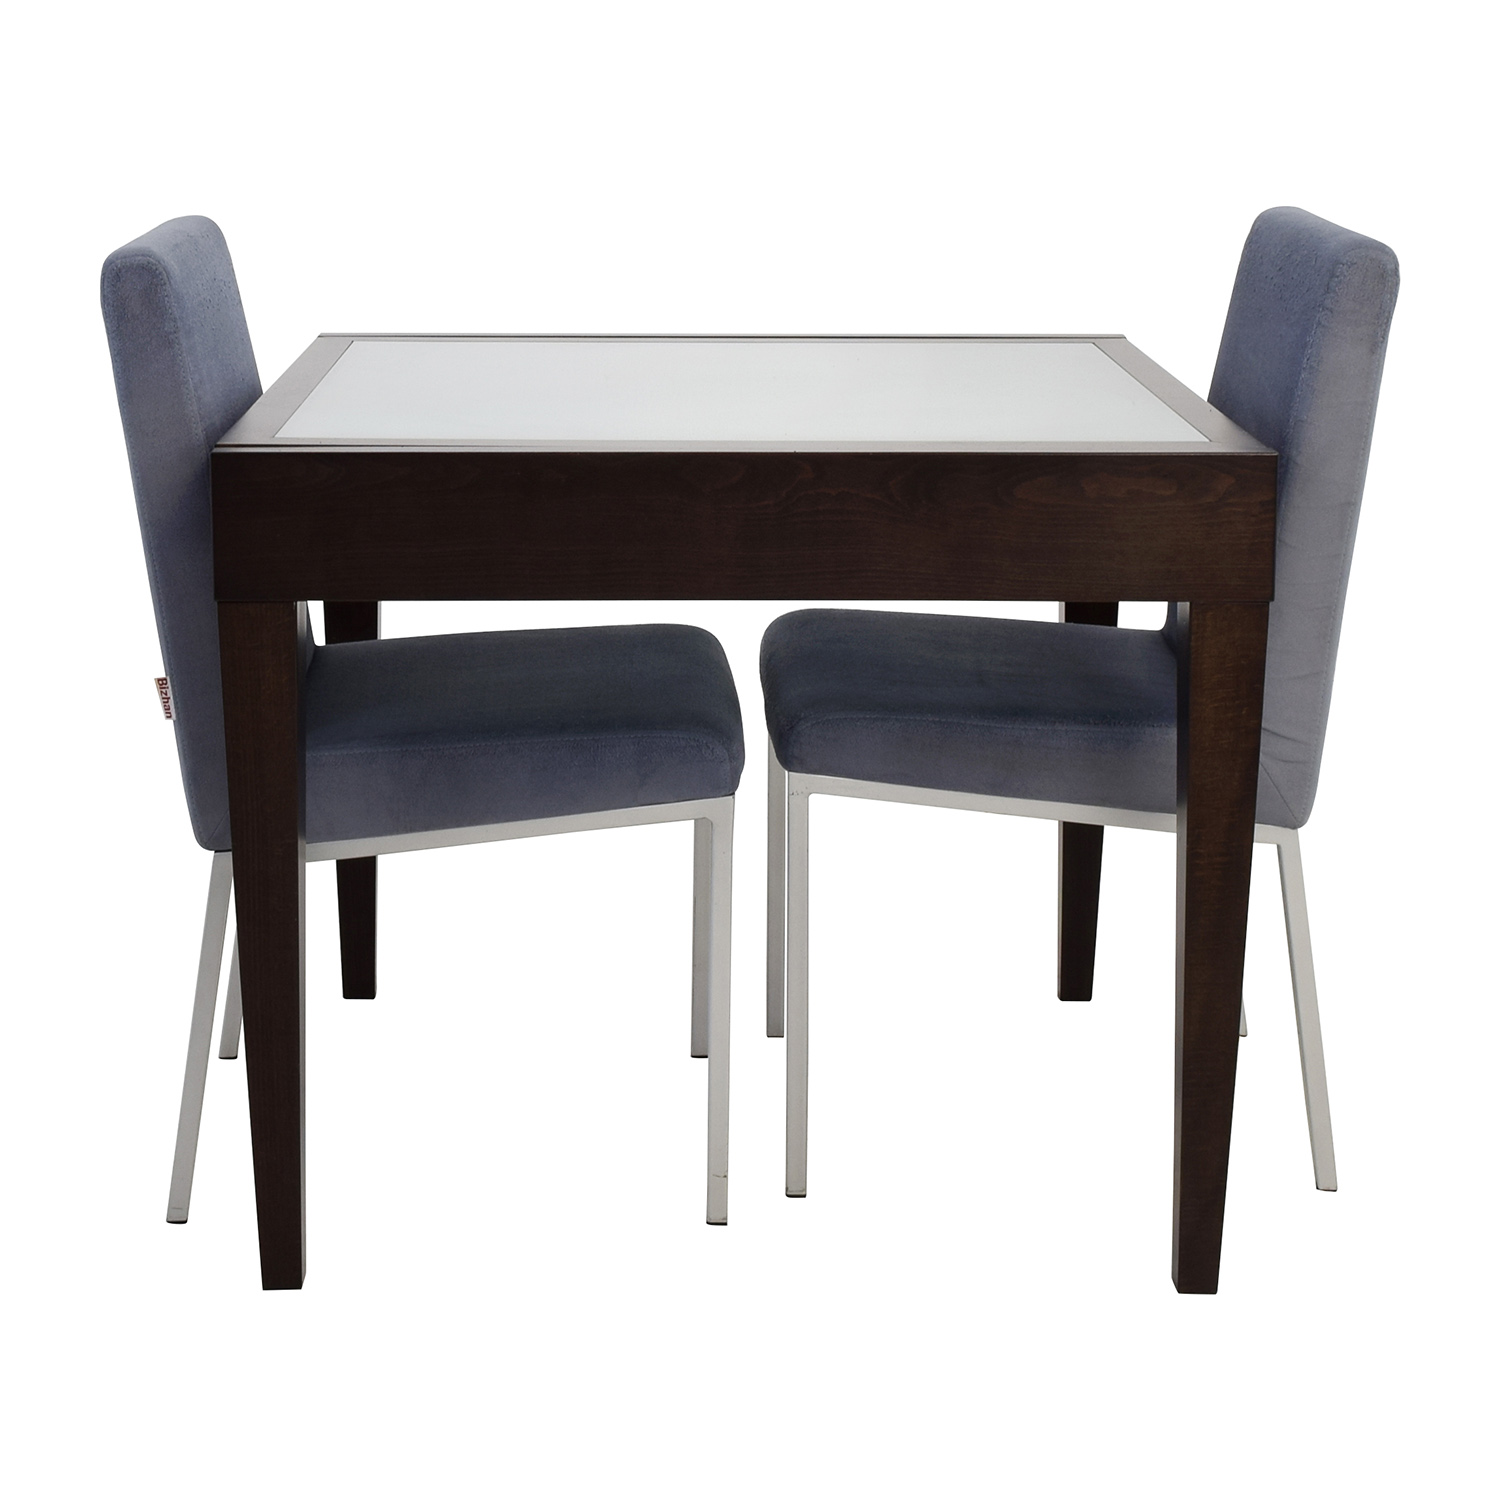 buy Design Within Reach Wood Spanna Extendable Table with Chairs Design Within Reach